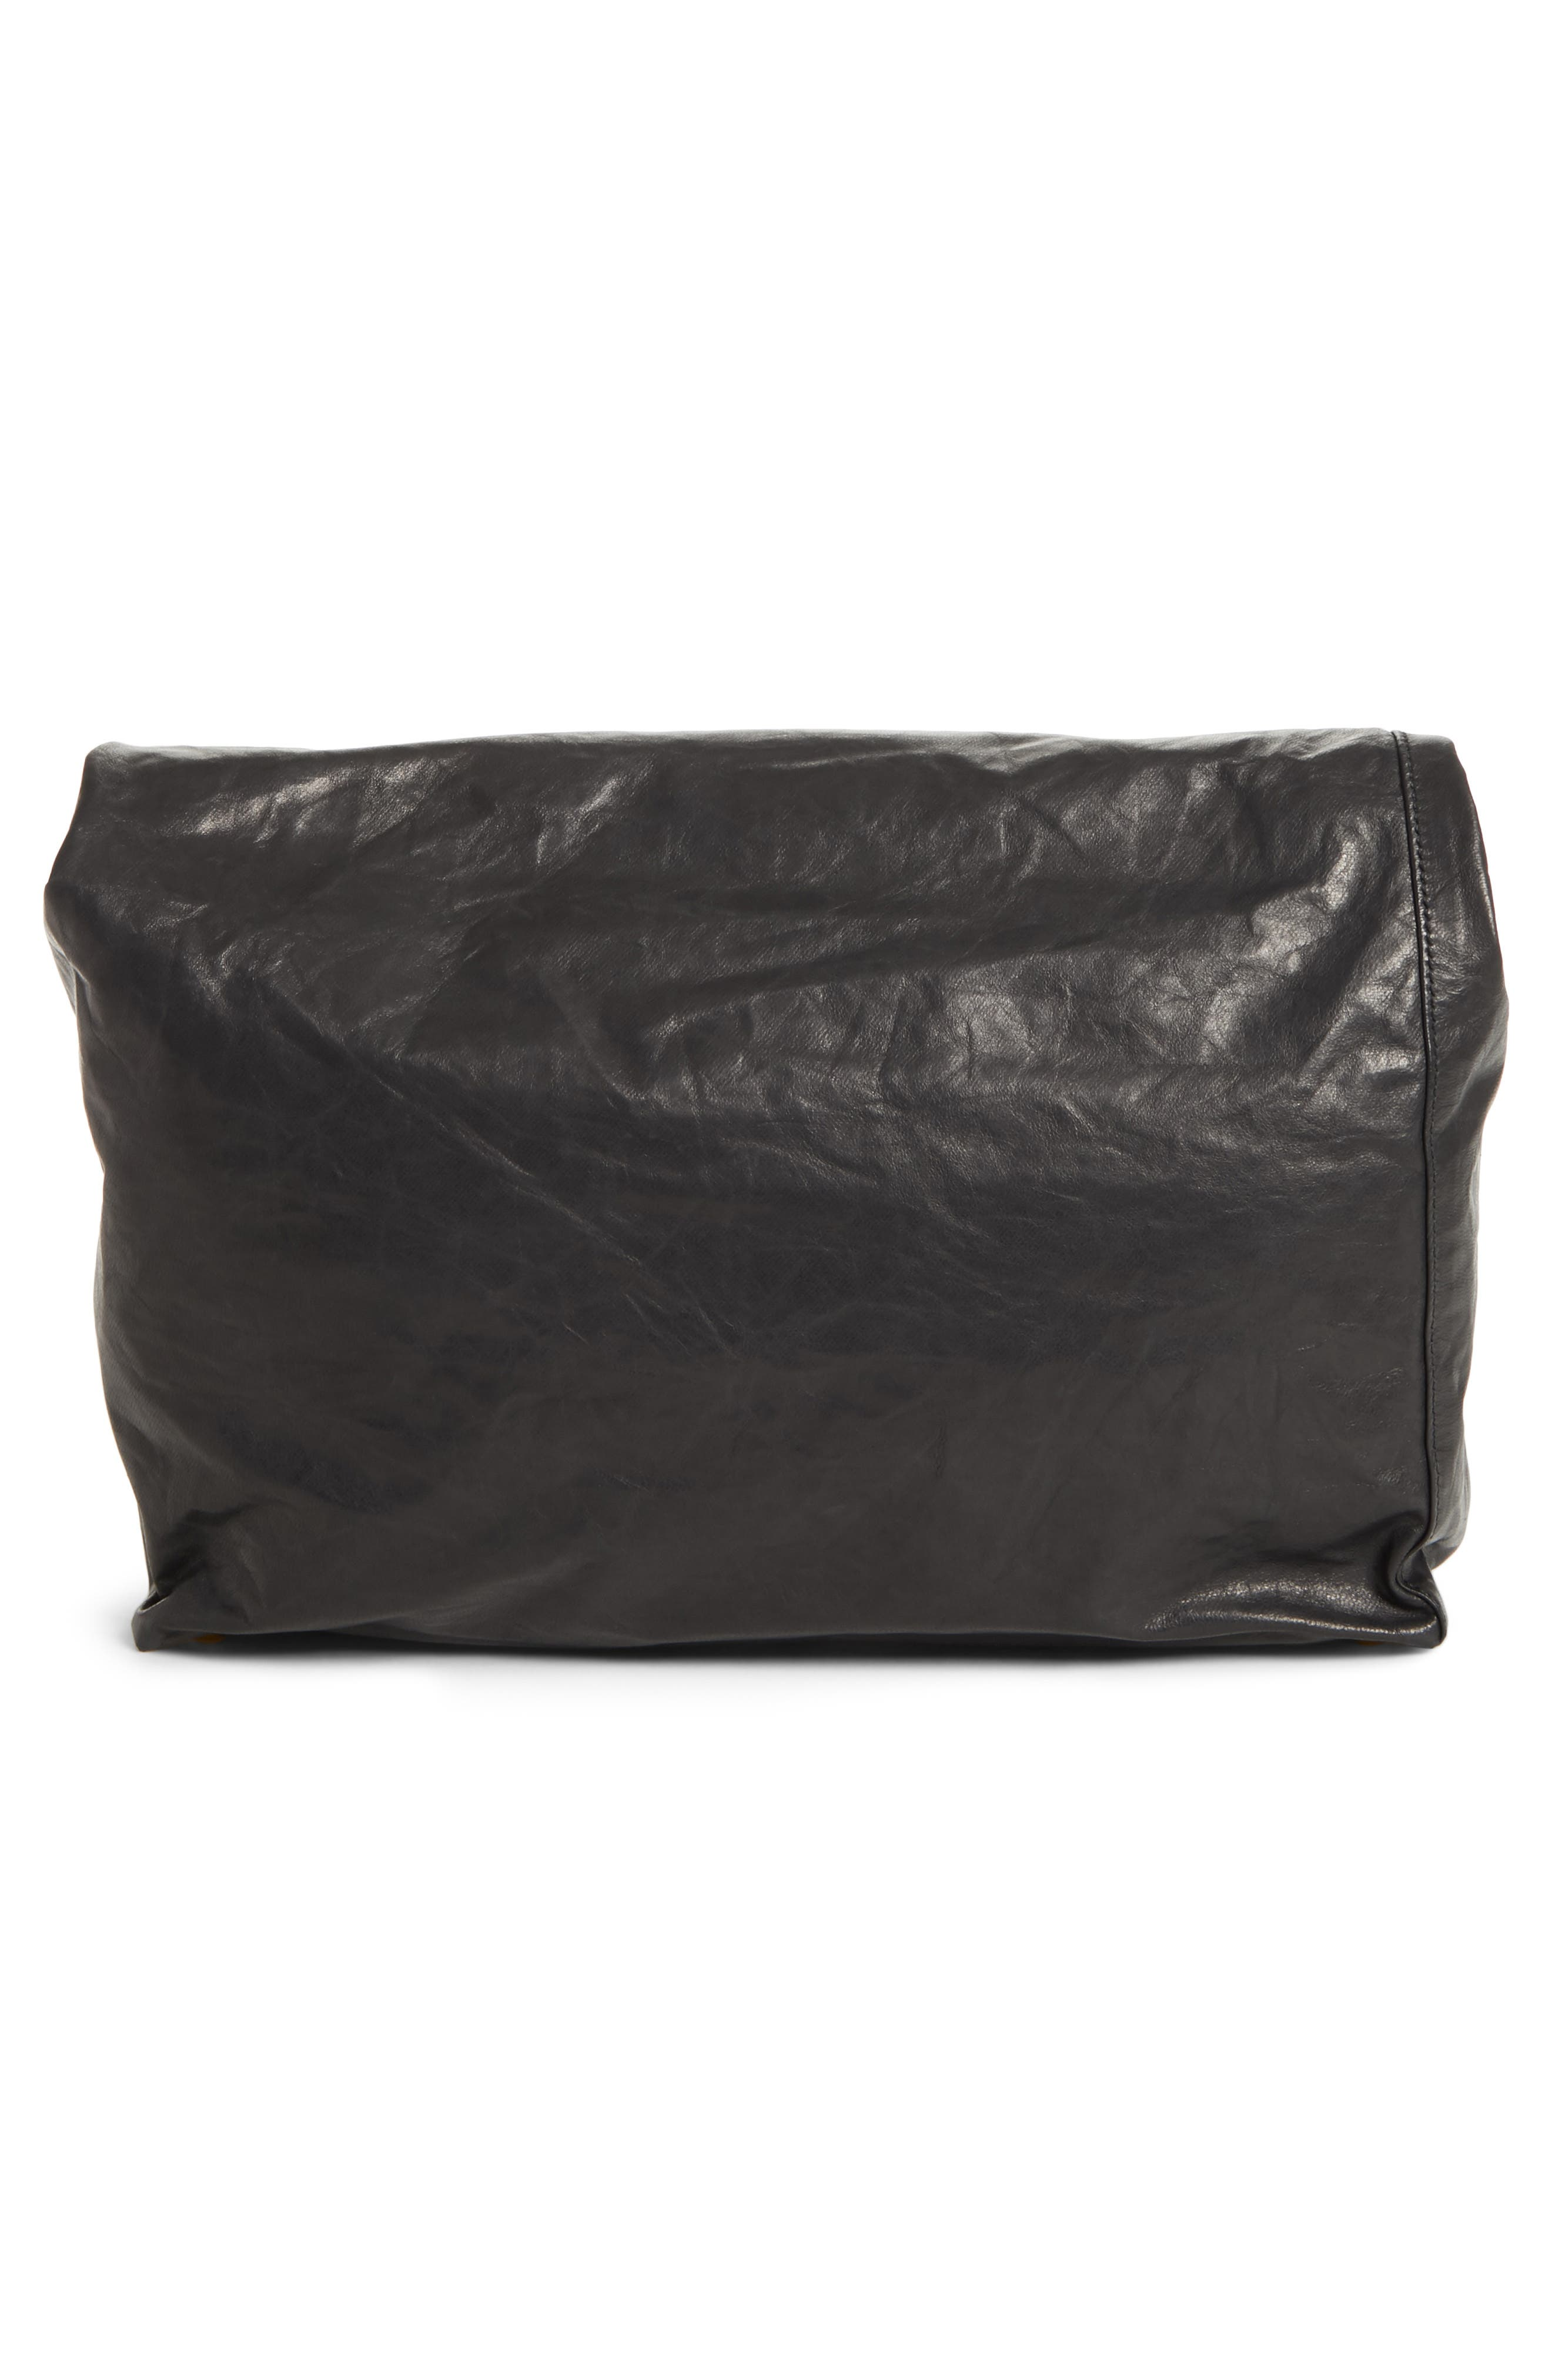 Lunchbag Leather Roll Top Clutch,                             Alternate thumbnail 3, color,                             BLACK